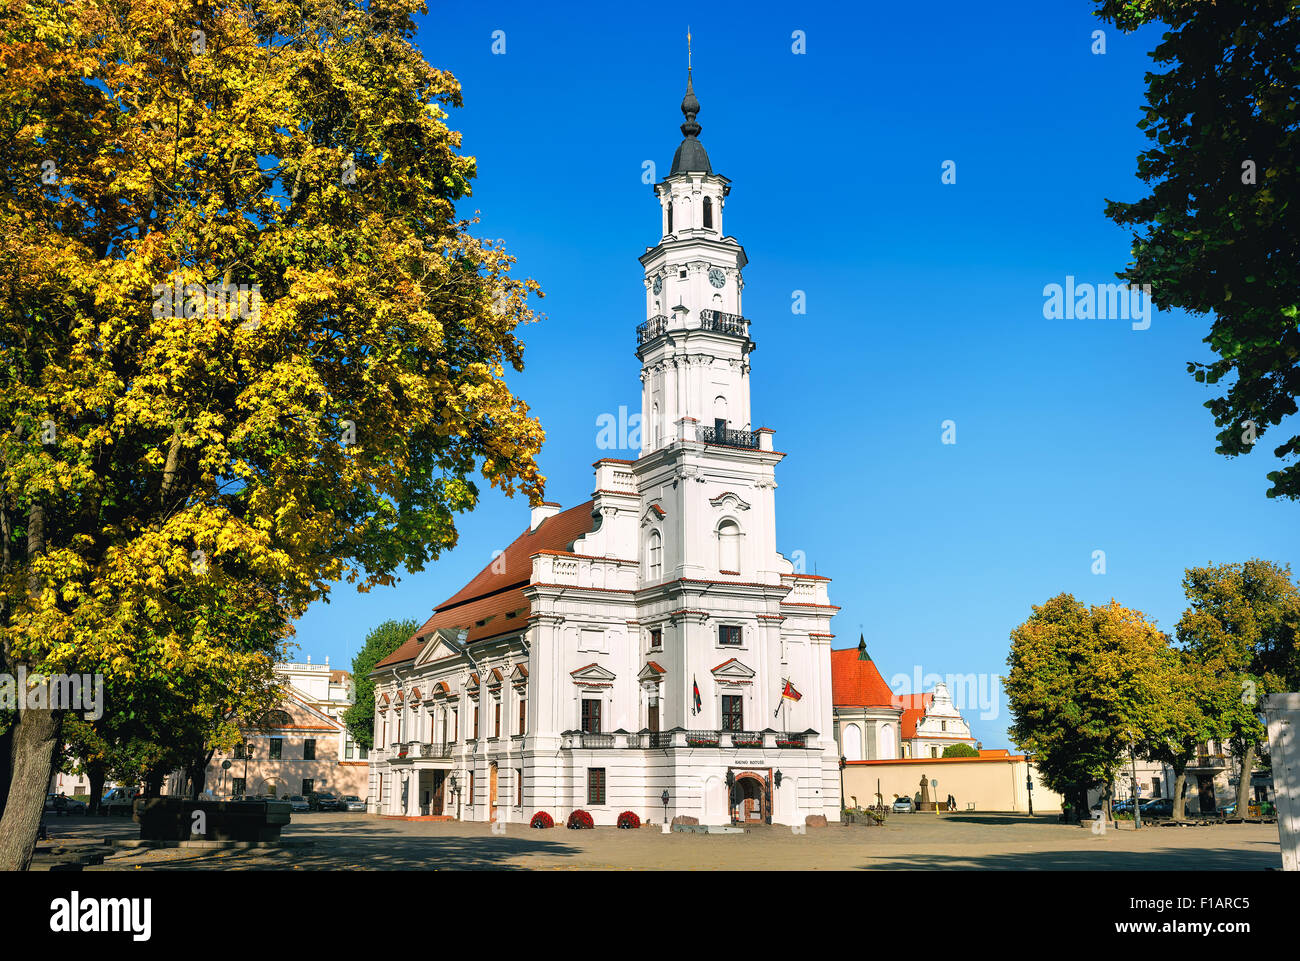 Kaunas City Hall, Lithuania - Stock Image